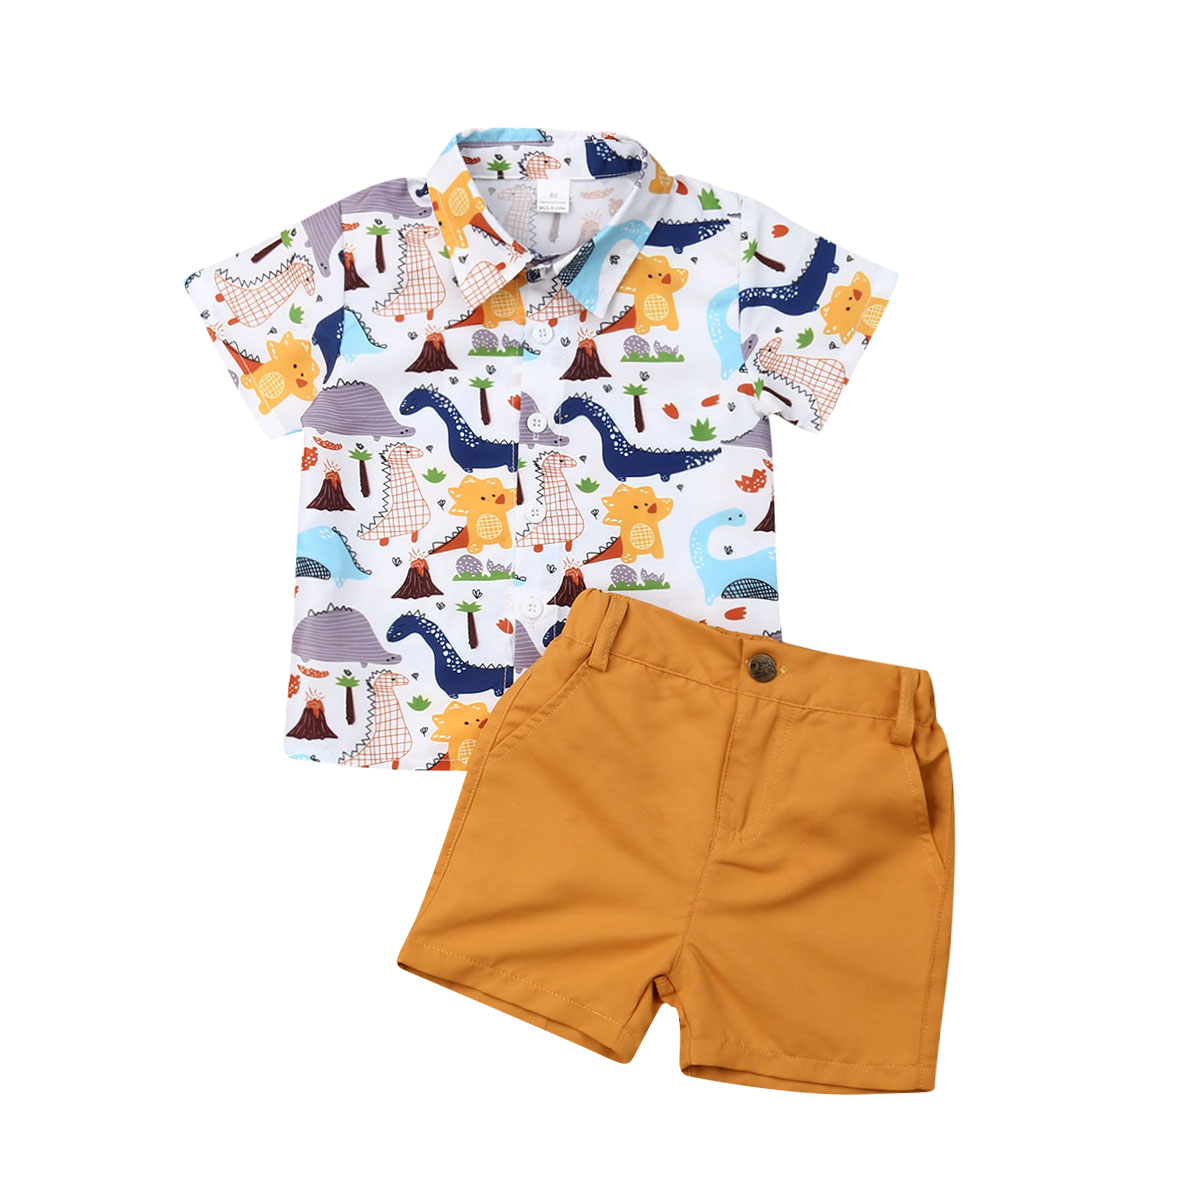 US Newborn Kids Baby Boy Summer Tops T-shirt Shorts Pants 2Pcs Outfits Clothes